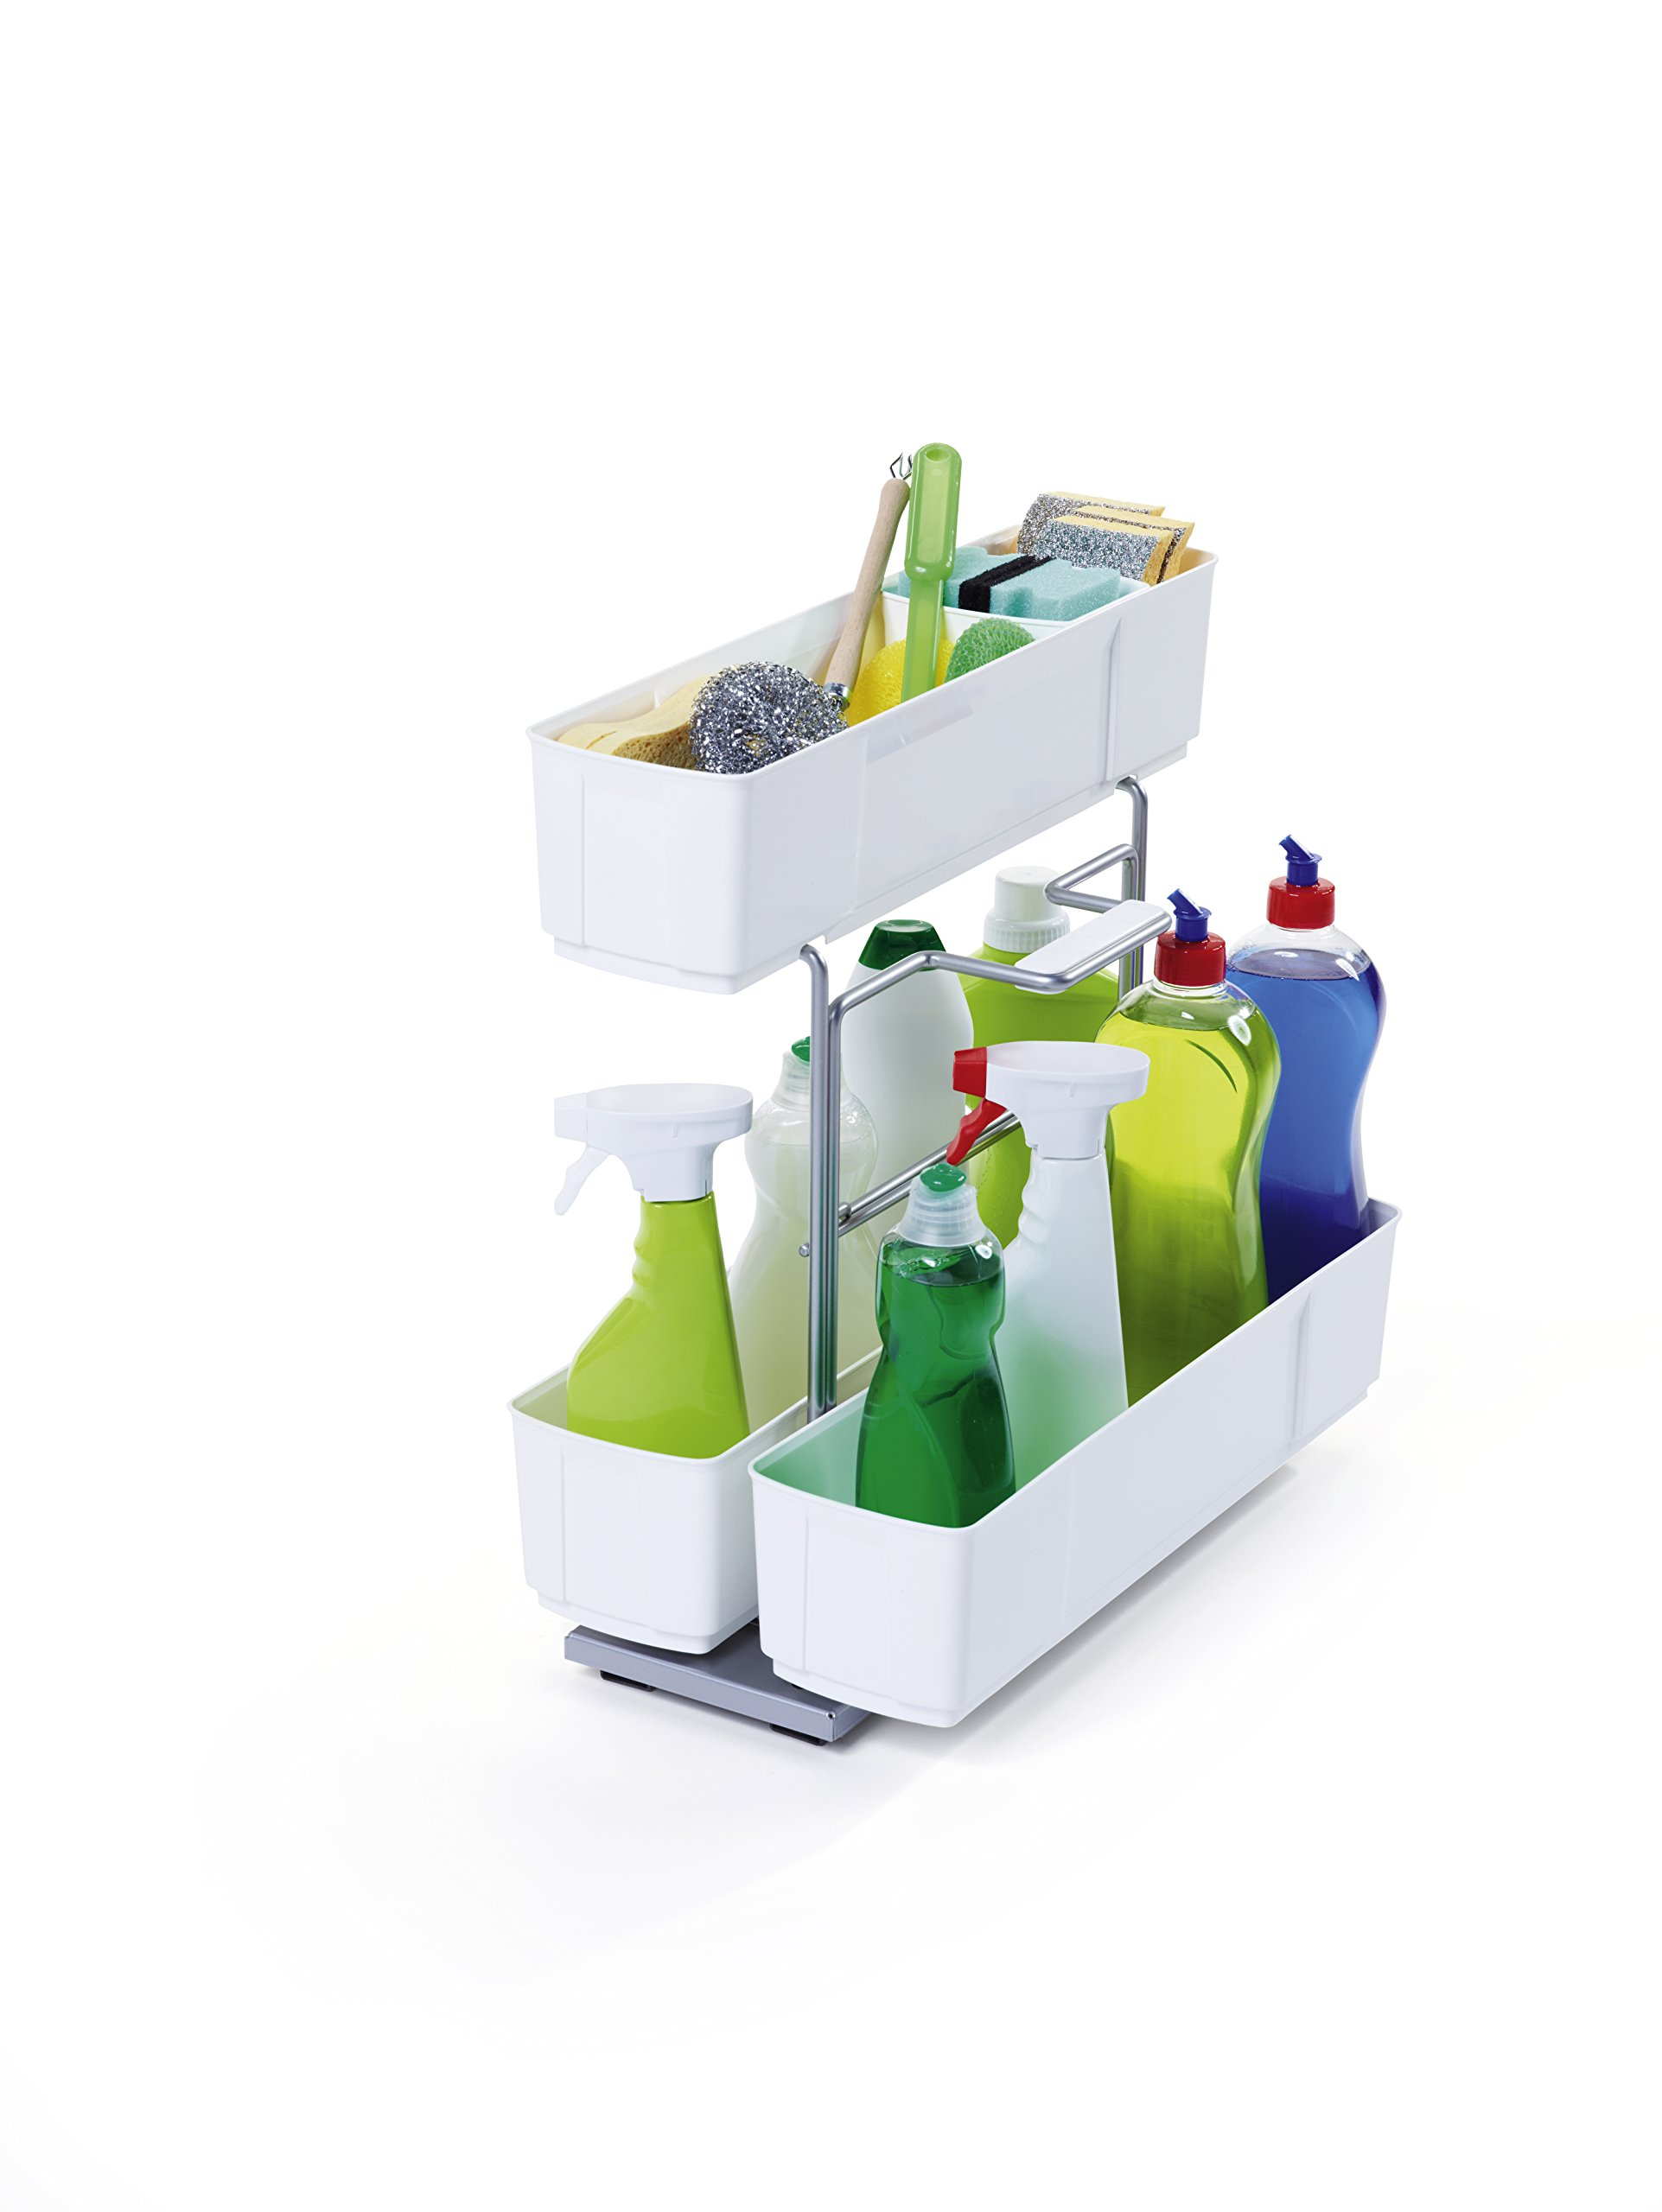 CleaningAGENT Under Sink Organizer | Chrome Steel and White | Sliding Pull-Out Base Cabinet Storage | Removable Carrying Caddy | Dishwasher Safe | Easy Install by Clever Storage by Kesseboehmer